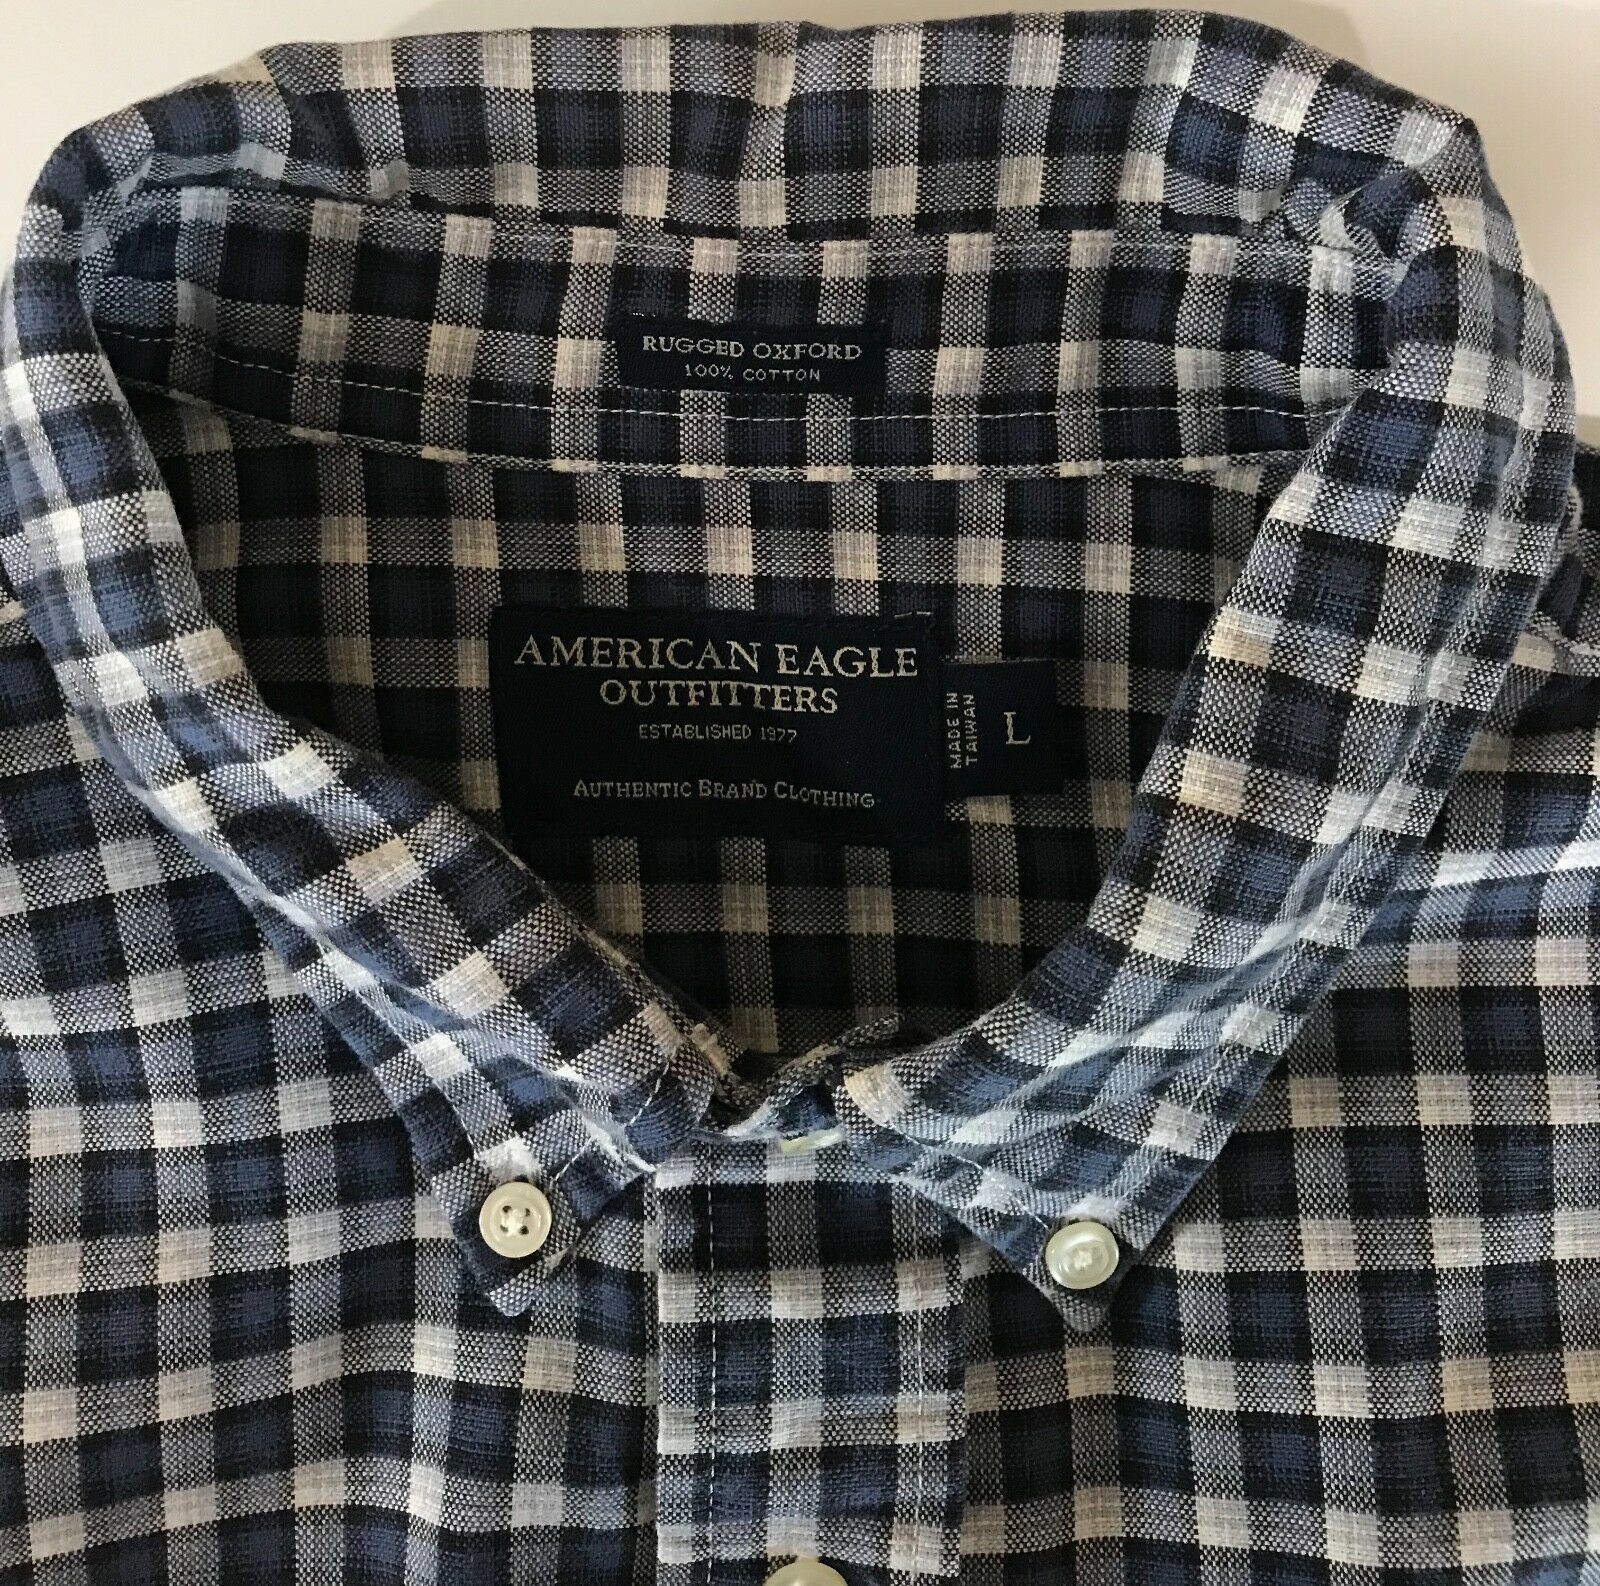 American Eagle Outfitters Men's Rugged Oxford Navy Blue White Check Shirt Large image 4